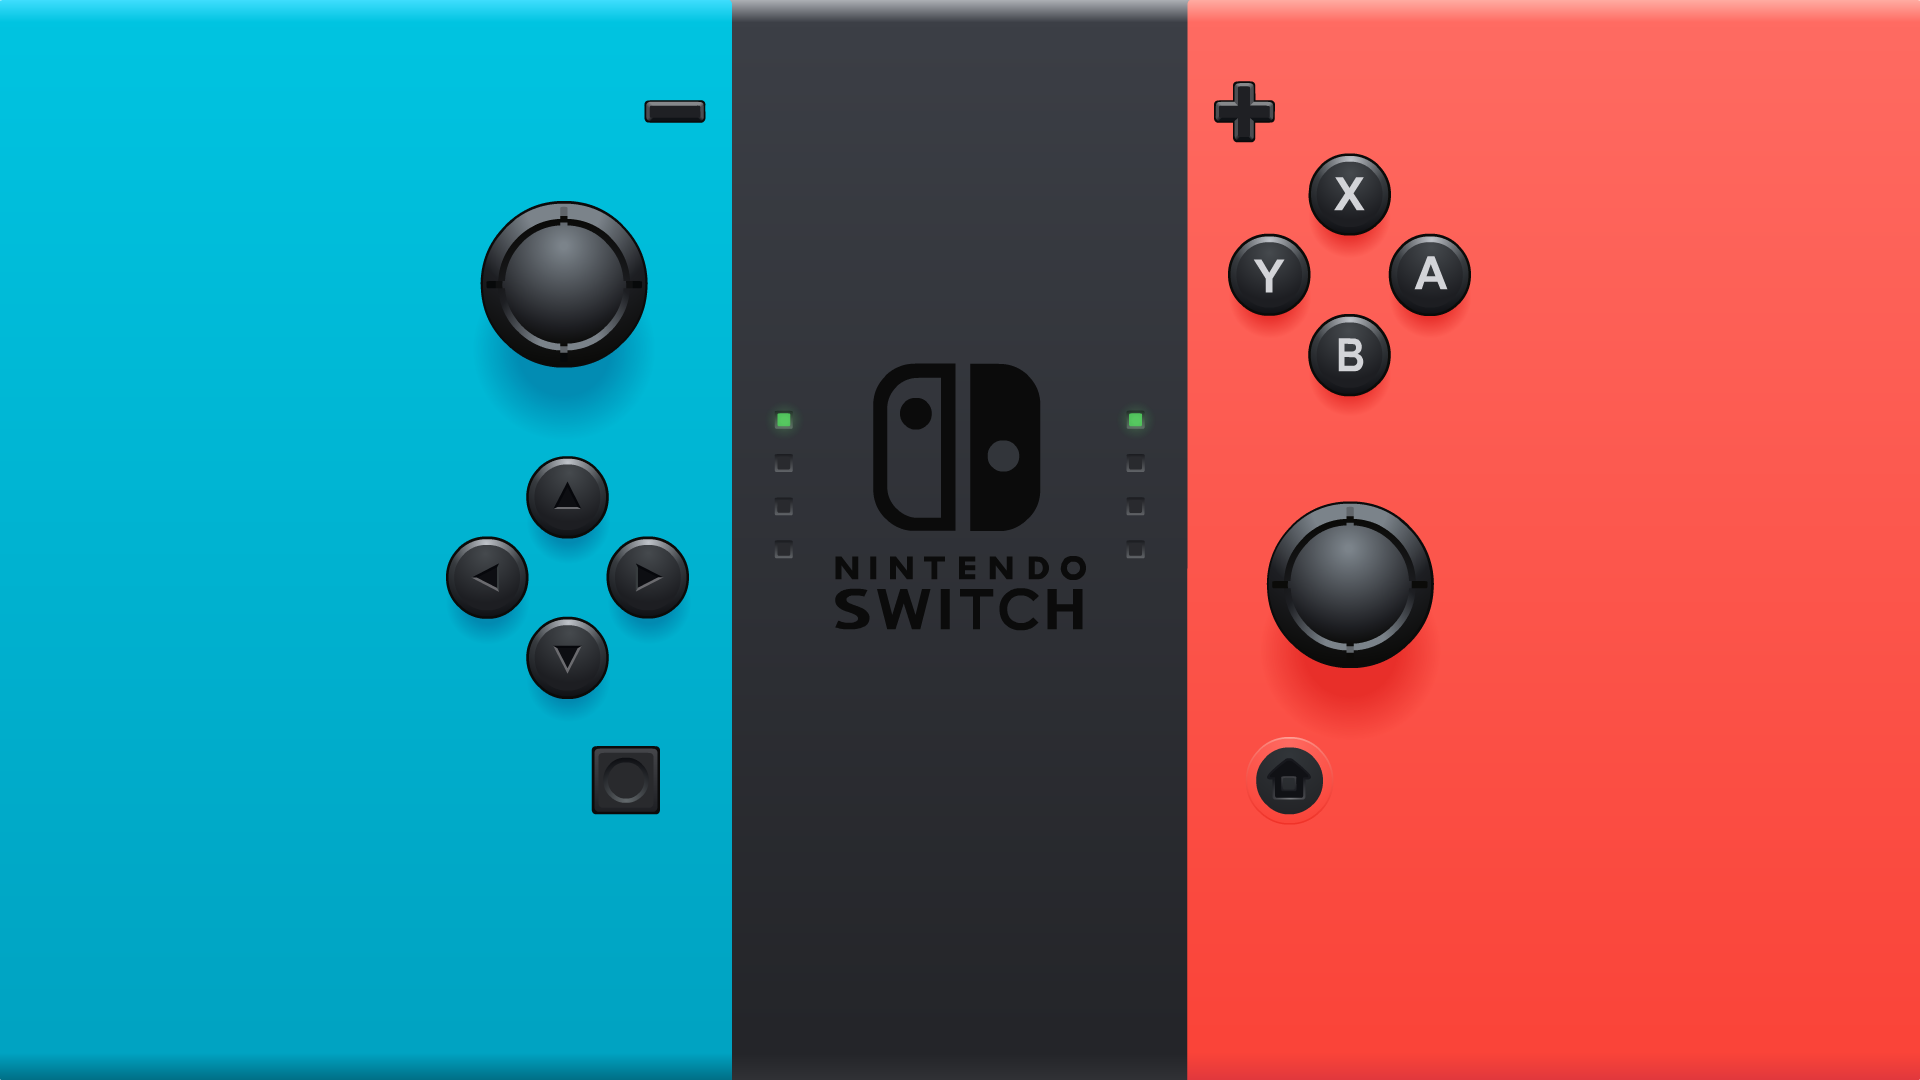 Switch Controller Wallpaper By Doctor G On Deviantart HD Wallpapers Download Free Images Wallpaper [1000image.com]